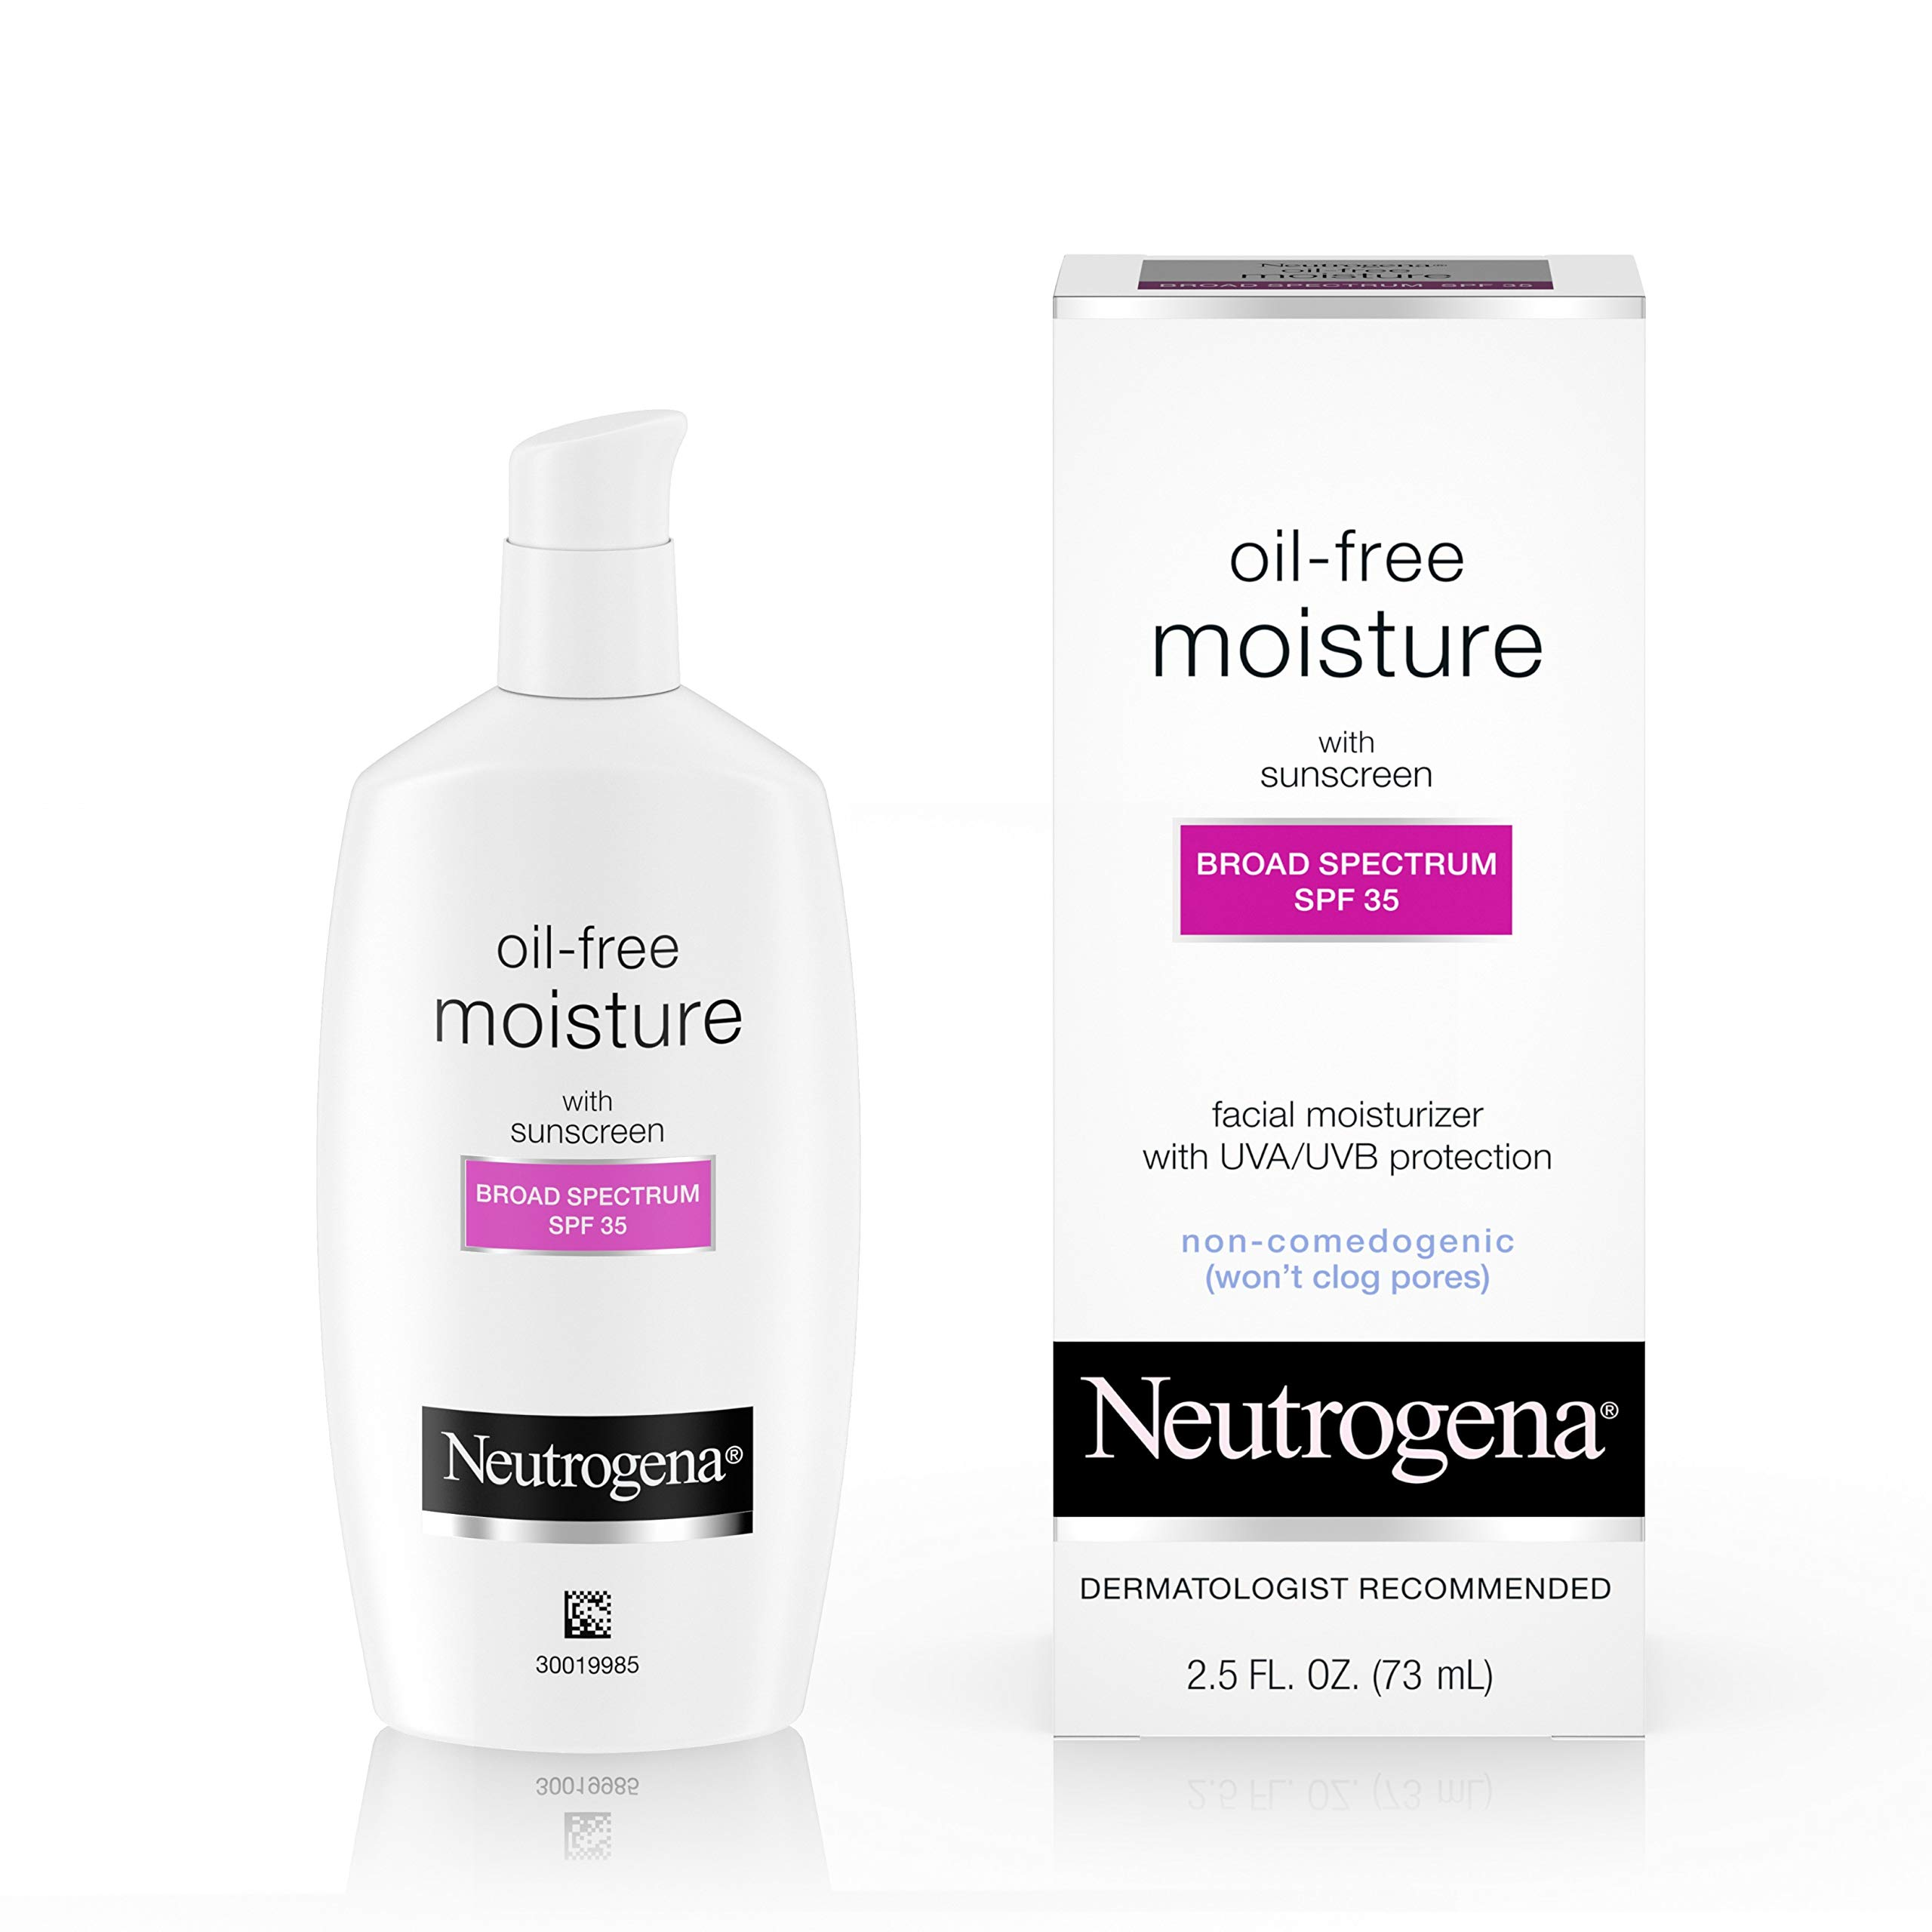 Neutrogena Oil-Free Daily Long Lasting Facial Moisturizer & Neck Cream with SPF 35 Sunscreen & Glycerin, Non-Greasy, Oil-Free & Non-Comedogenic Face Moisturizer, 2.5 fl. oz